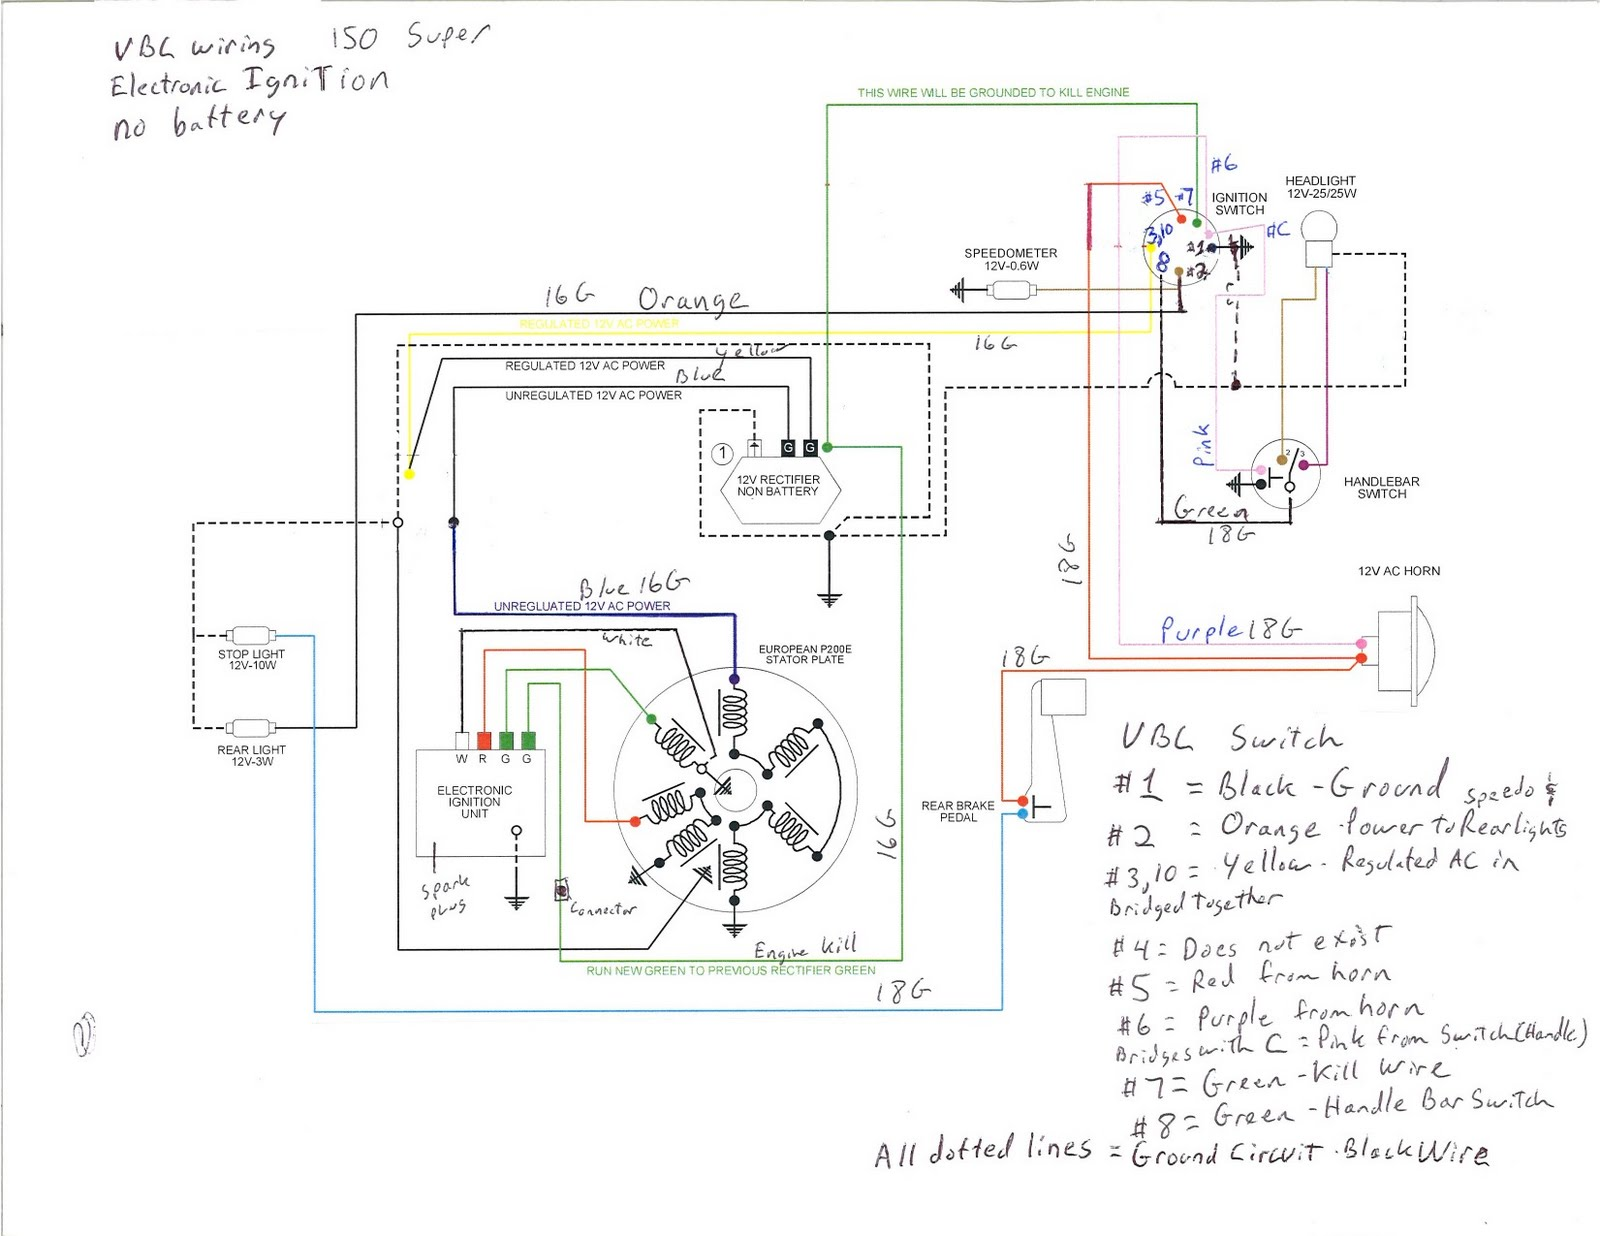 2006 Tank Scooter Wiring Diagram Will Be A Thing Schematics 150 Schematic Diagrams Rh Bestkodiaddons Co 250cc